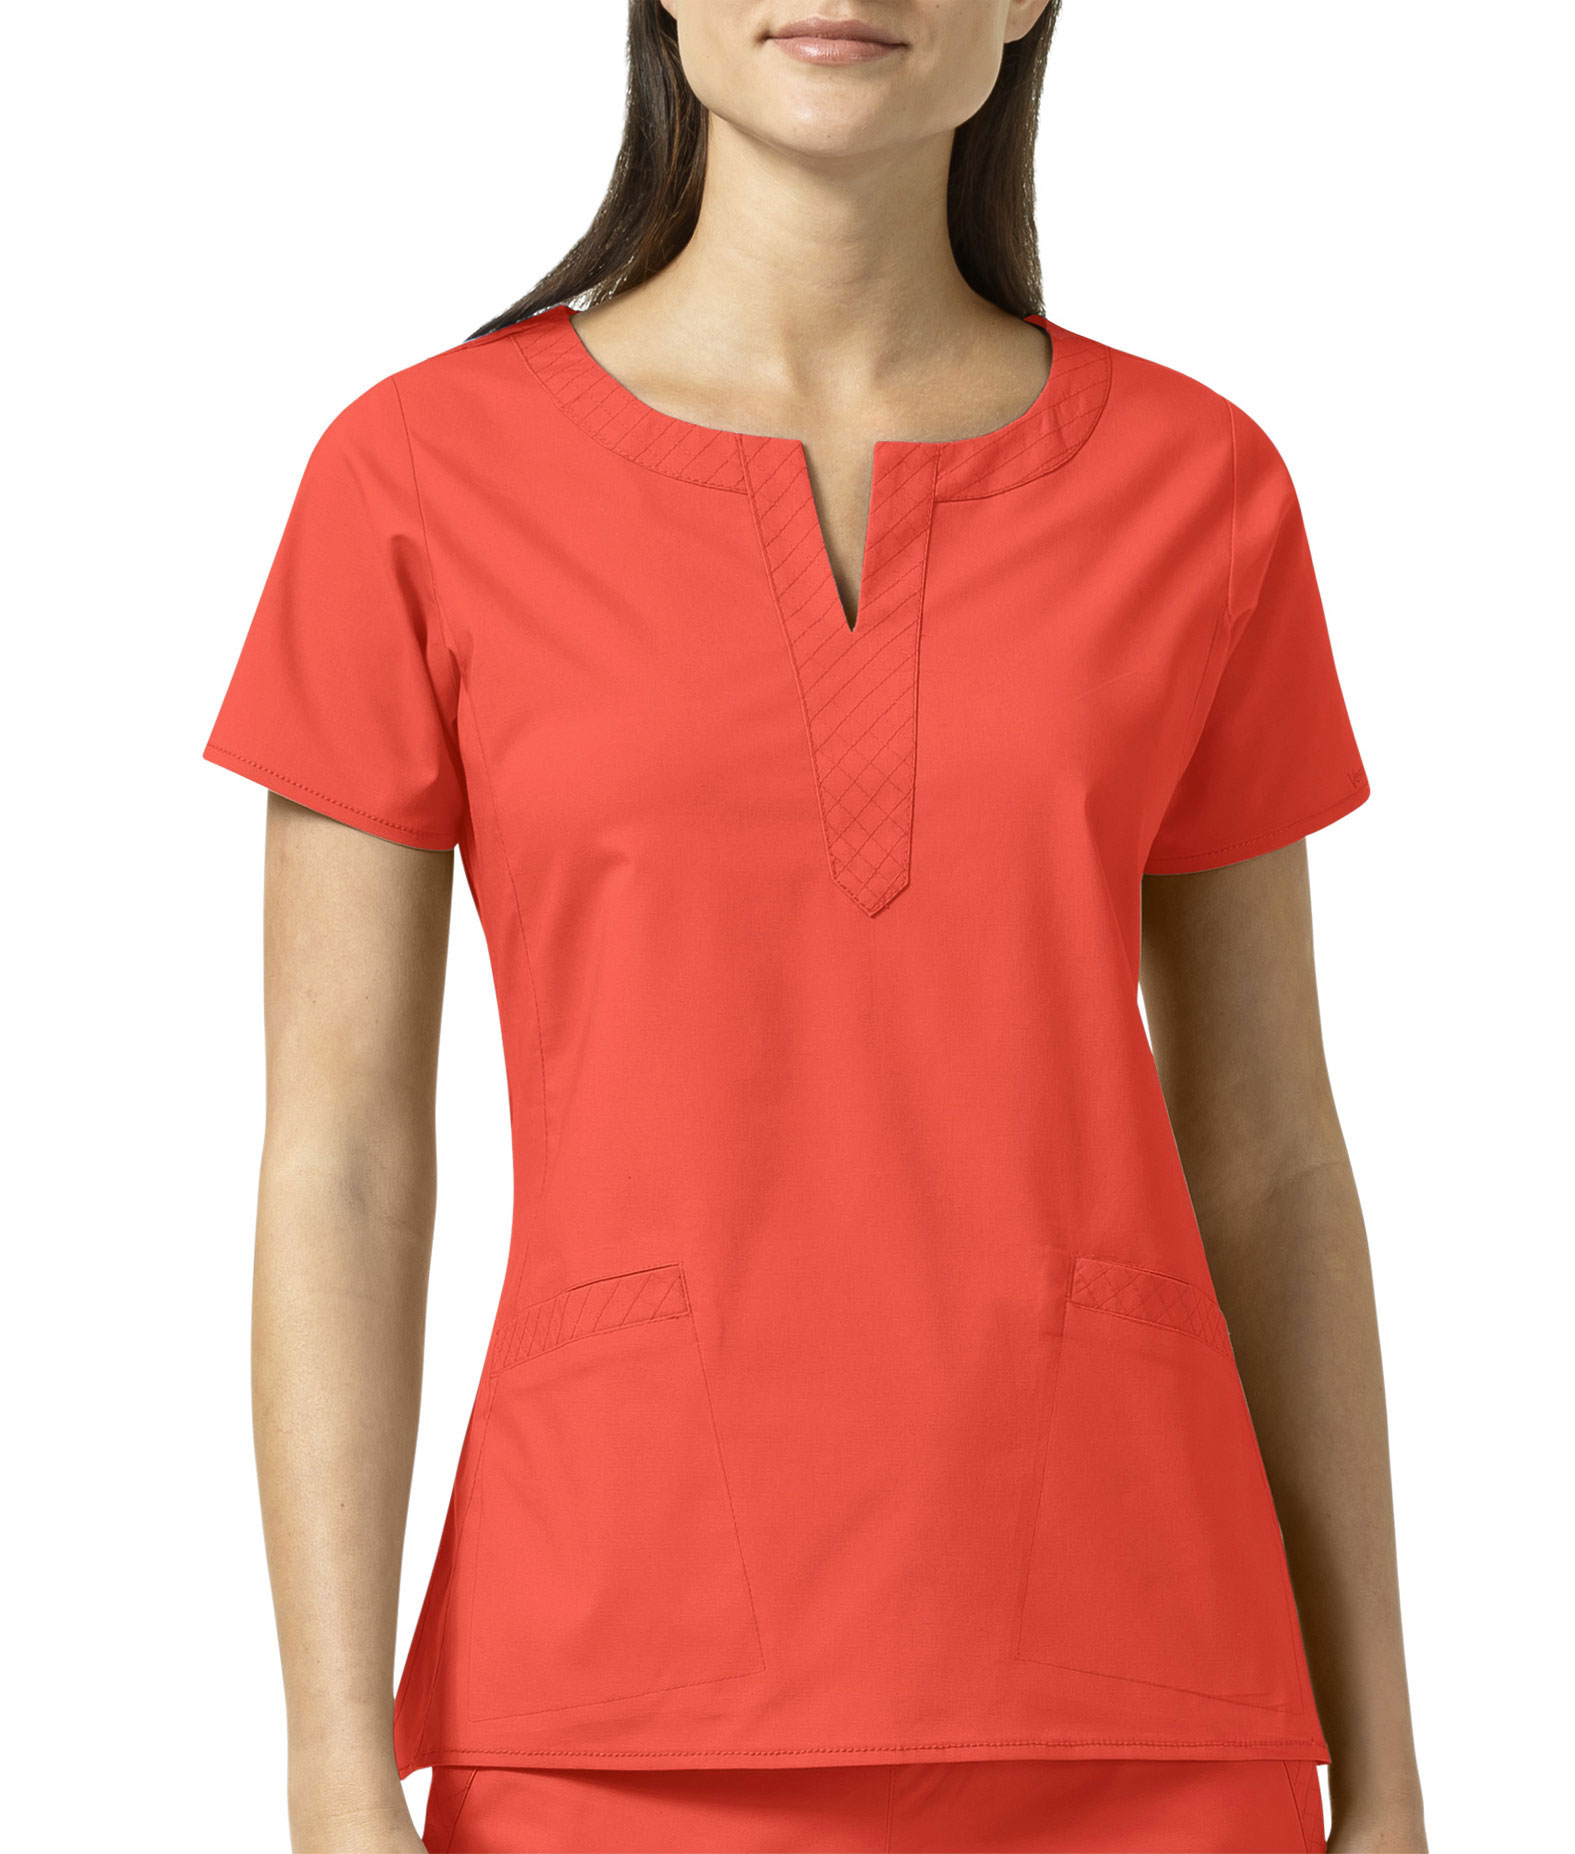 Linda Notch Neck Top By Vera Bradley